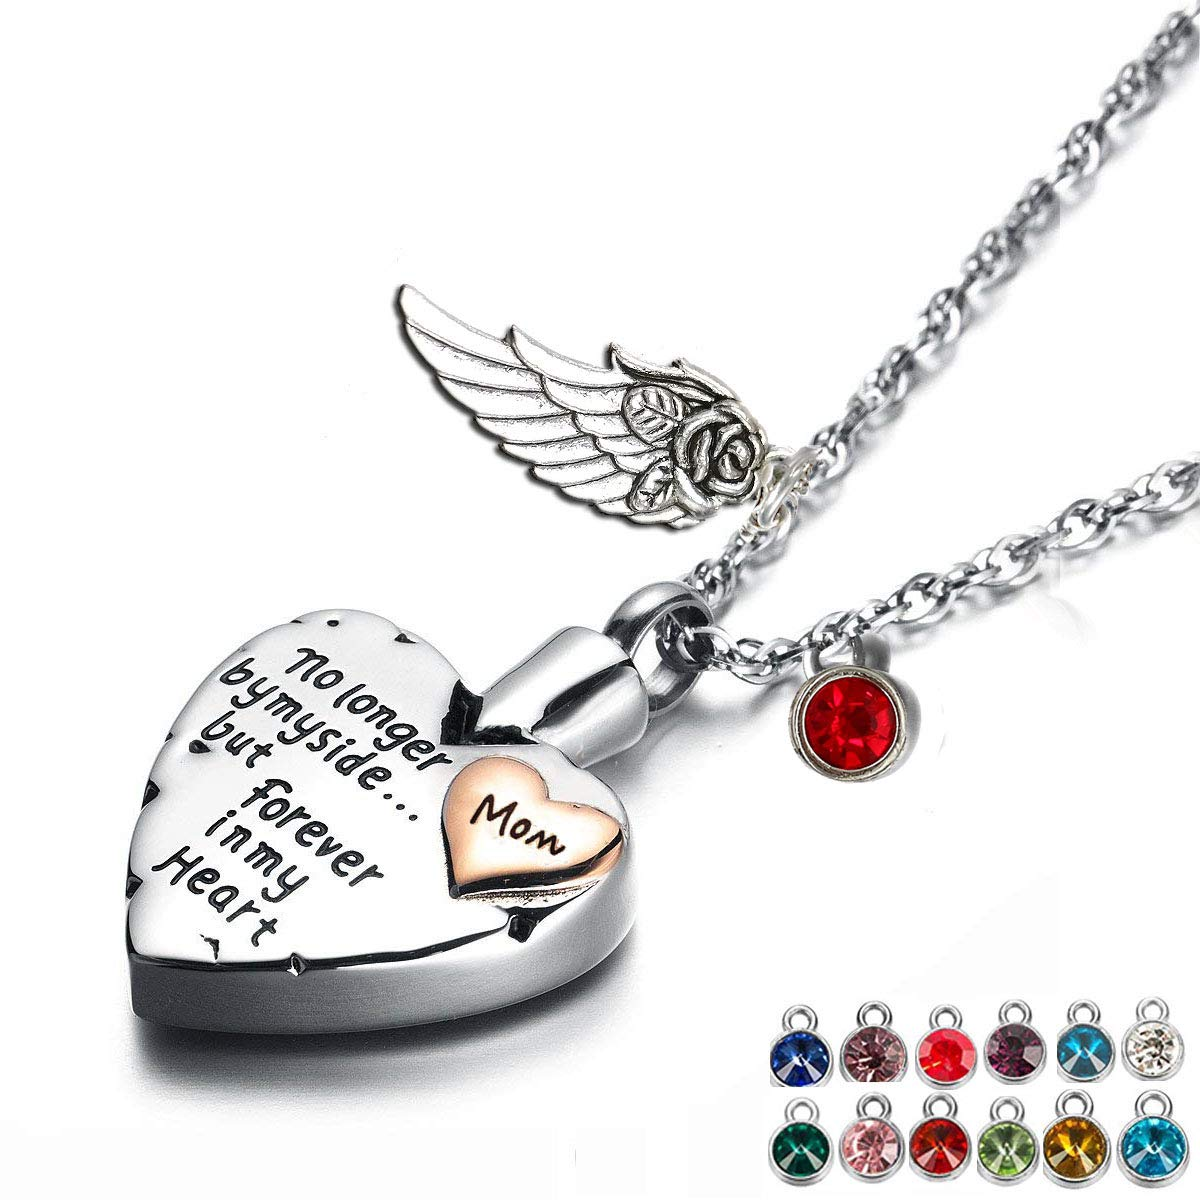 Heart Cremation Urn Necklace for Ashes Urn Jewelry Memorial Pendant with Fill Kit and Gift Box - Always on My Mind Forever in My Heart (Mom) by AZpet (Image #1)